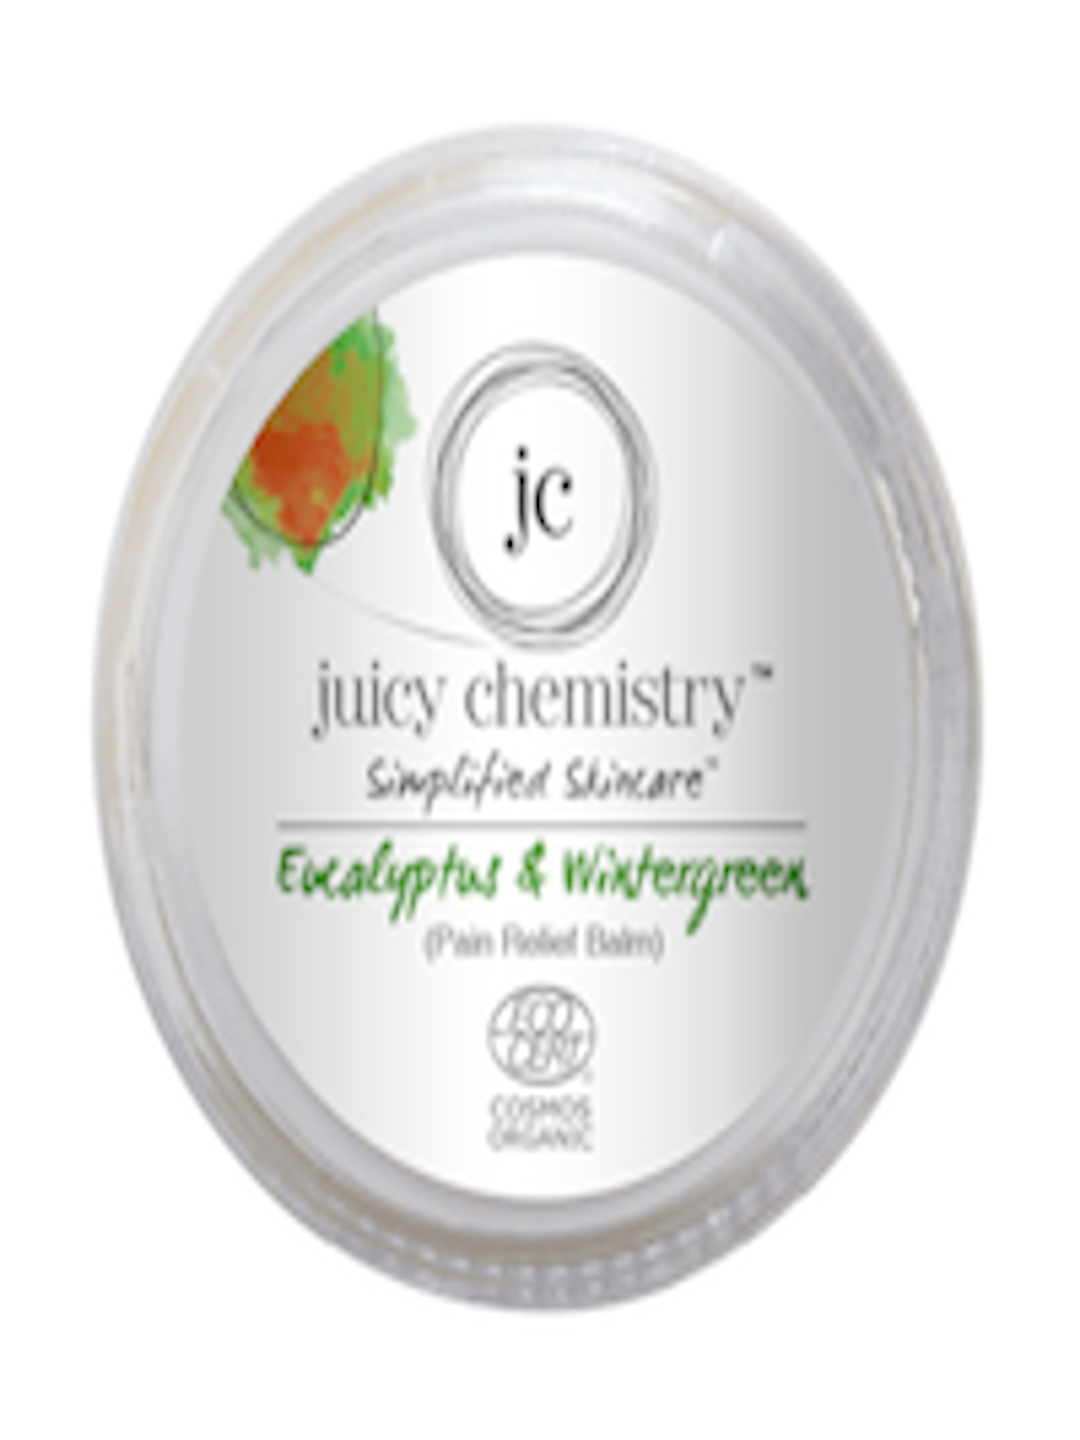 Juicy Chemistry by Juicy Chemistry